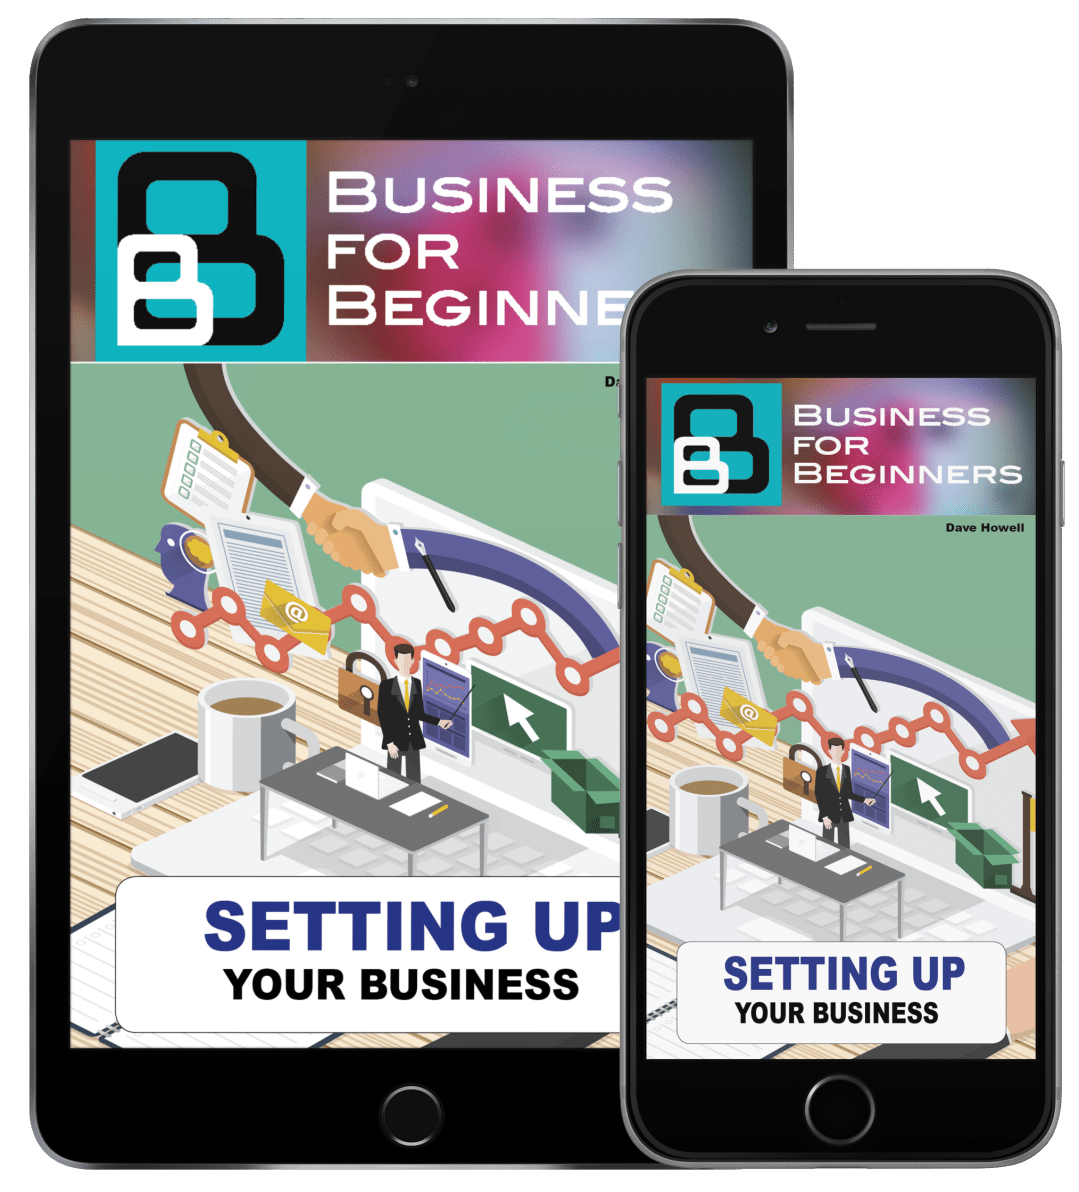 The Micro Business eBook App